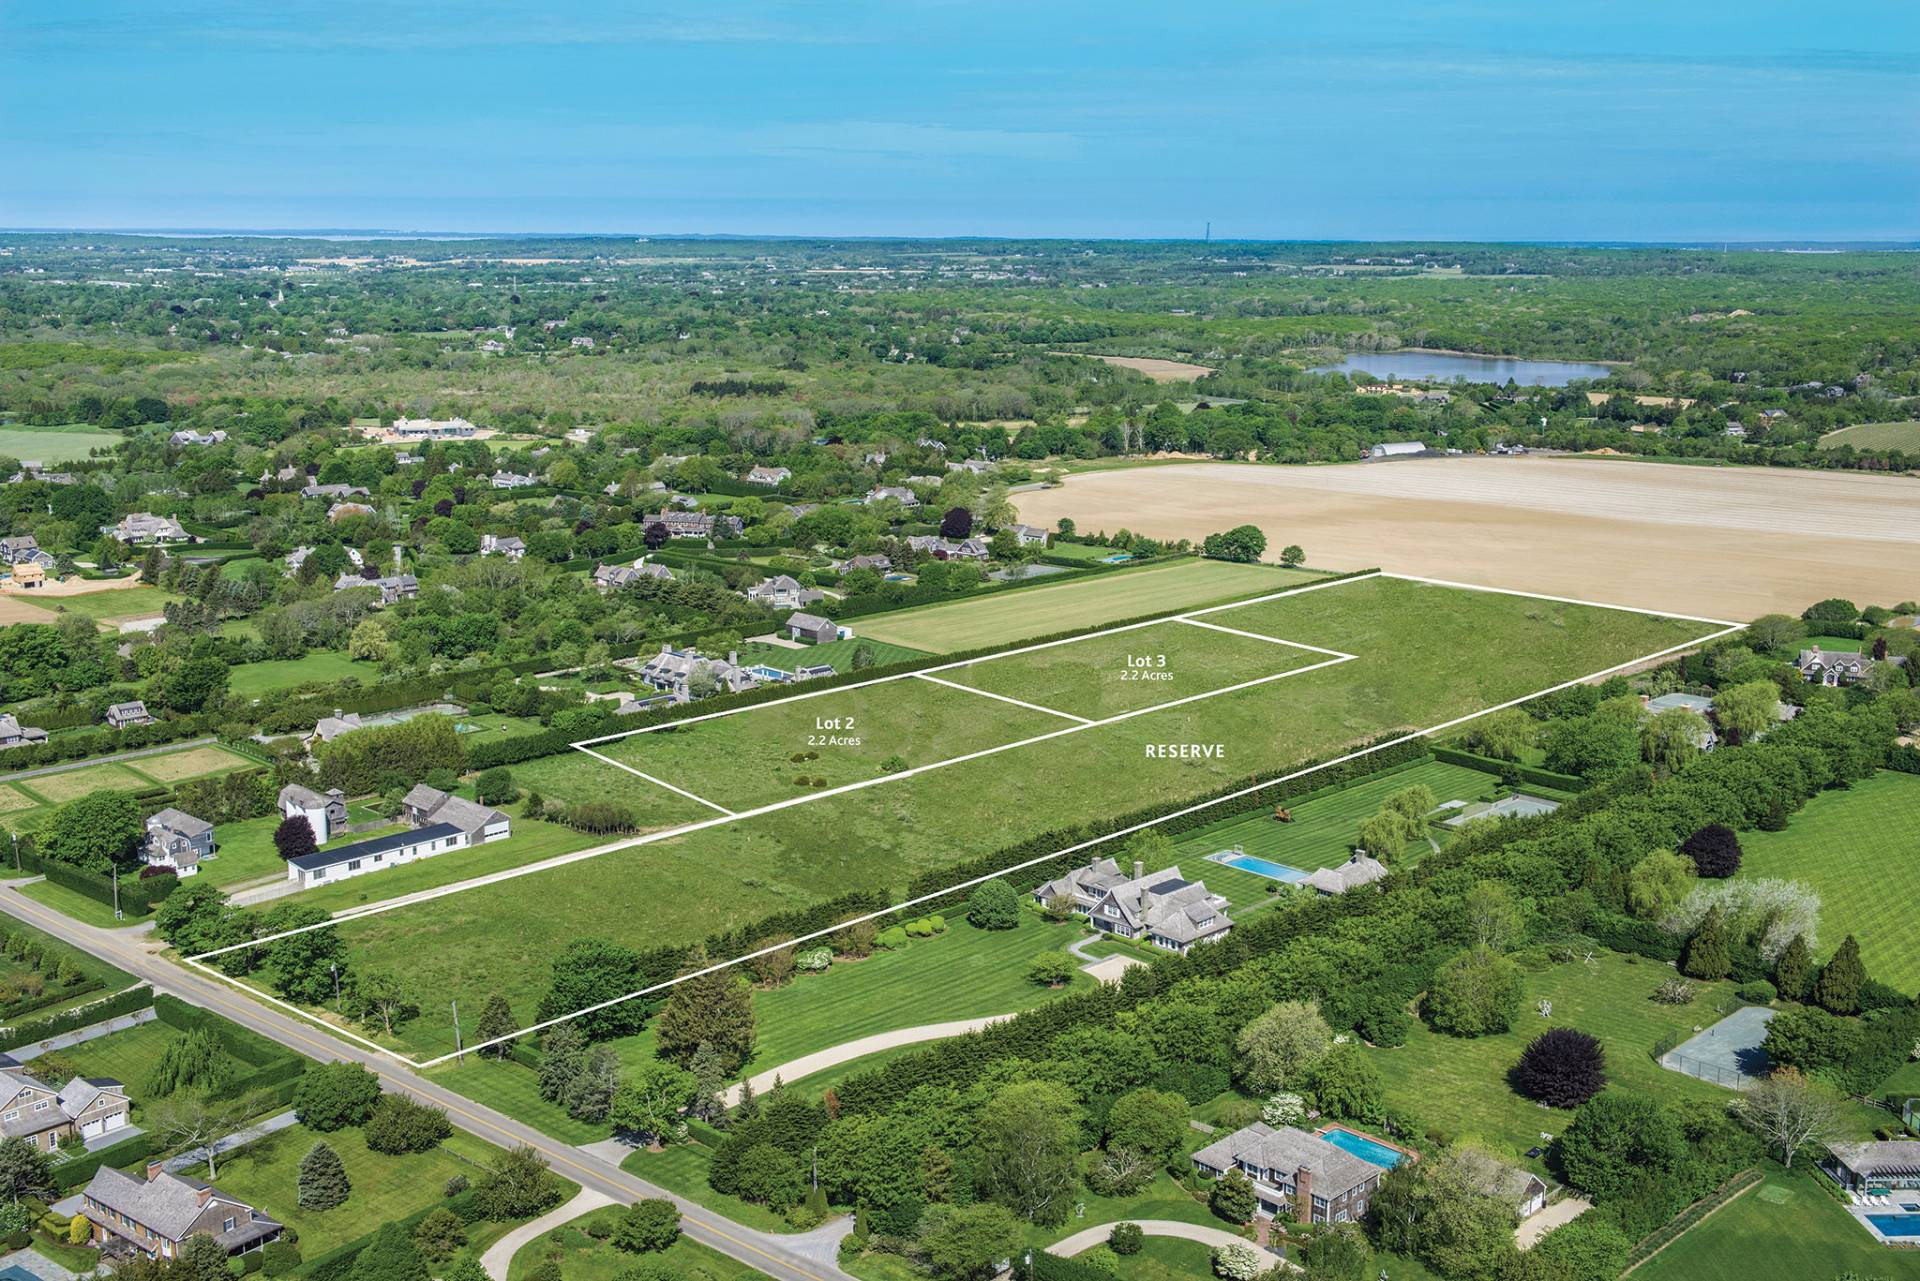 Terreno por un Venta en The Land At Luna Farm 280 Parsonage Lane - Lot 2, Sagaponack, Nueva York